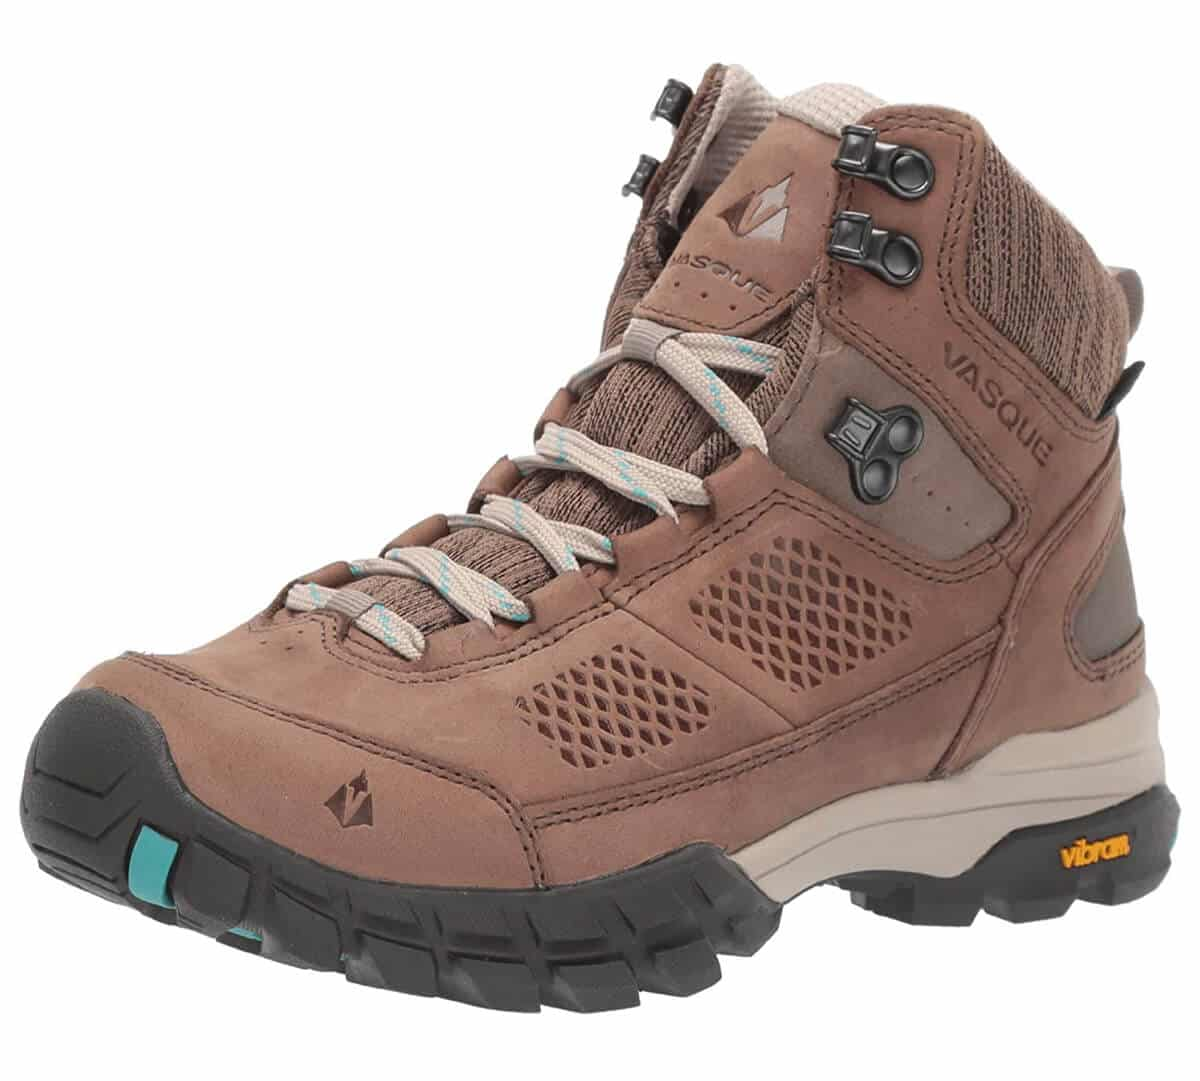 Vasque Talus at UltraDry Hiking Boot - Women's